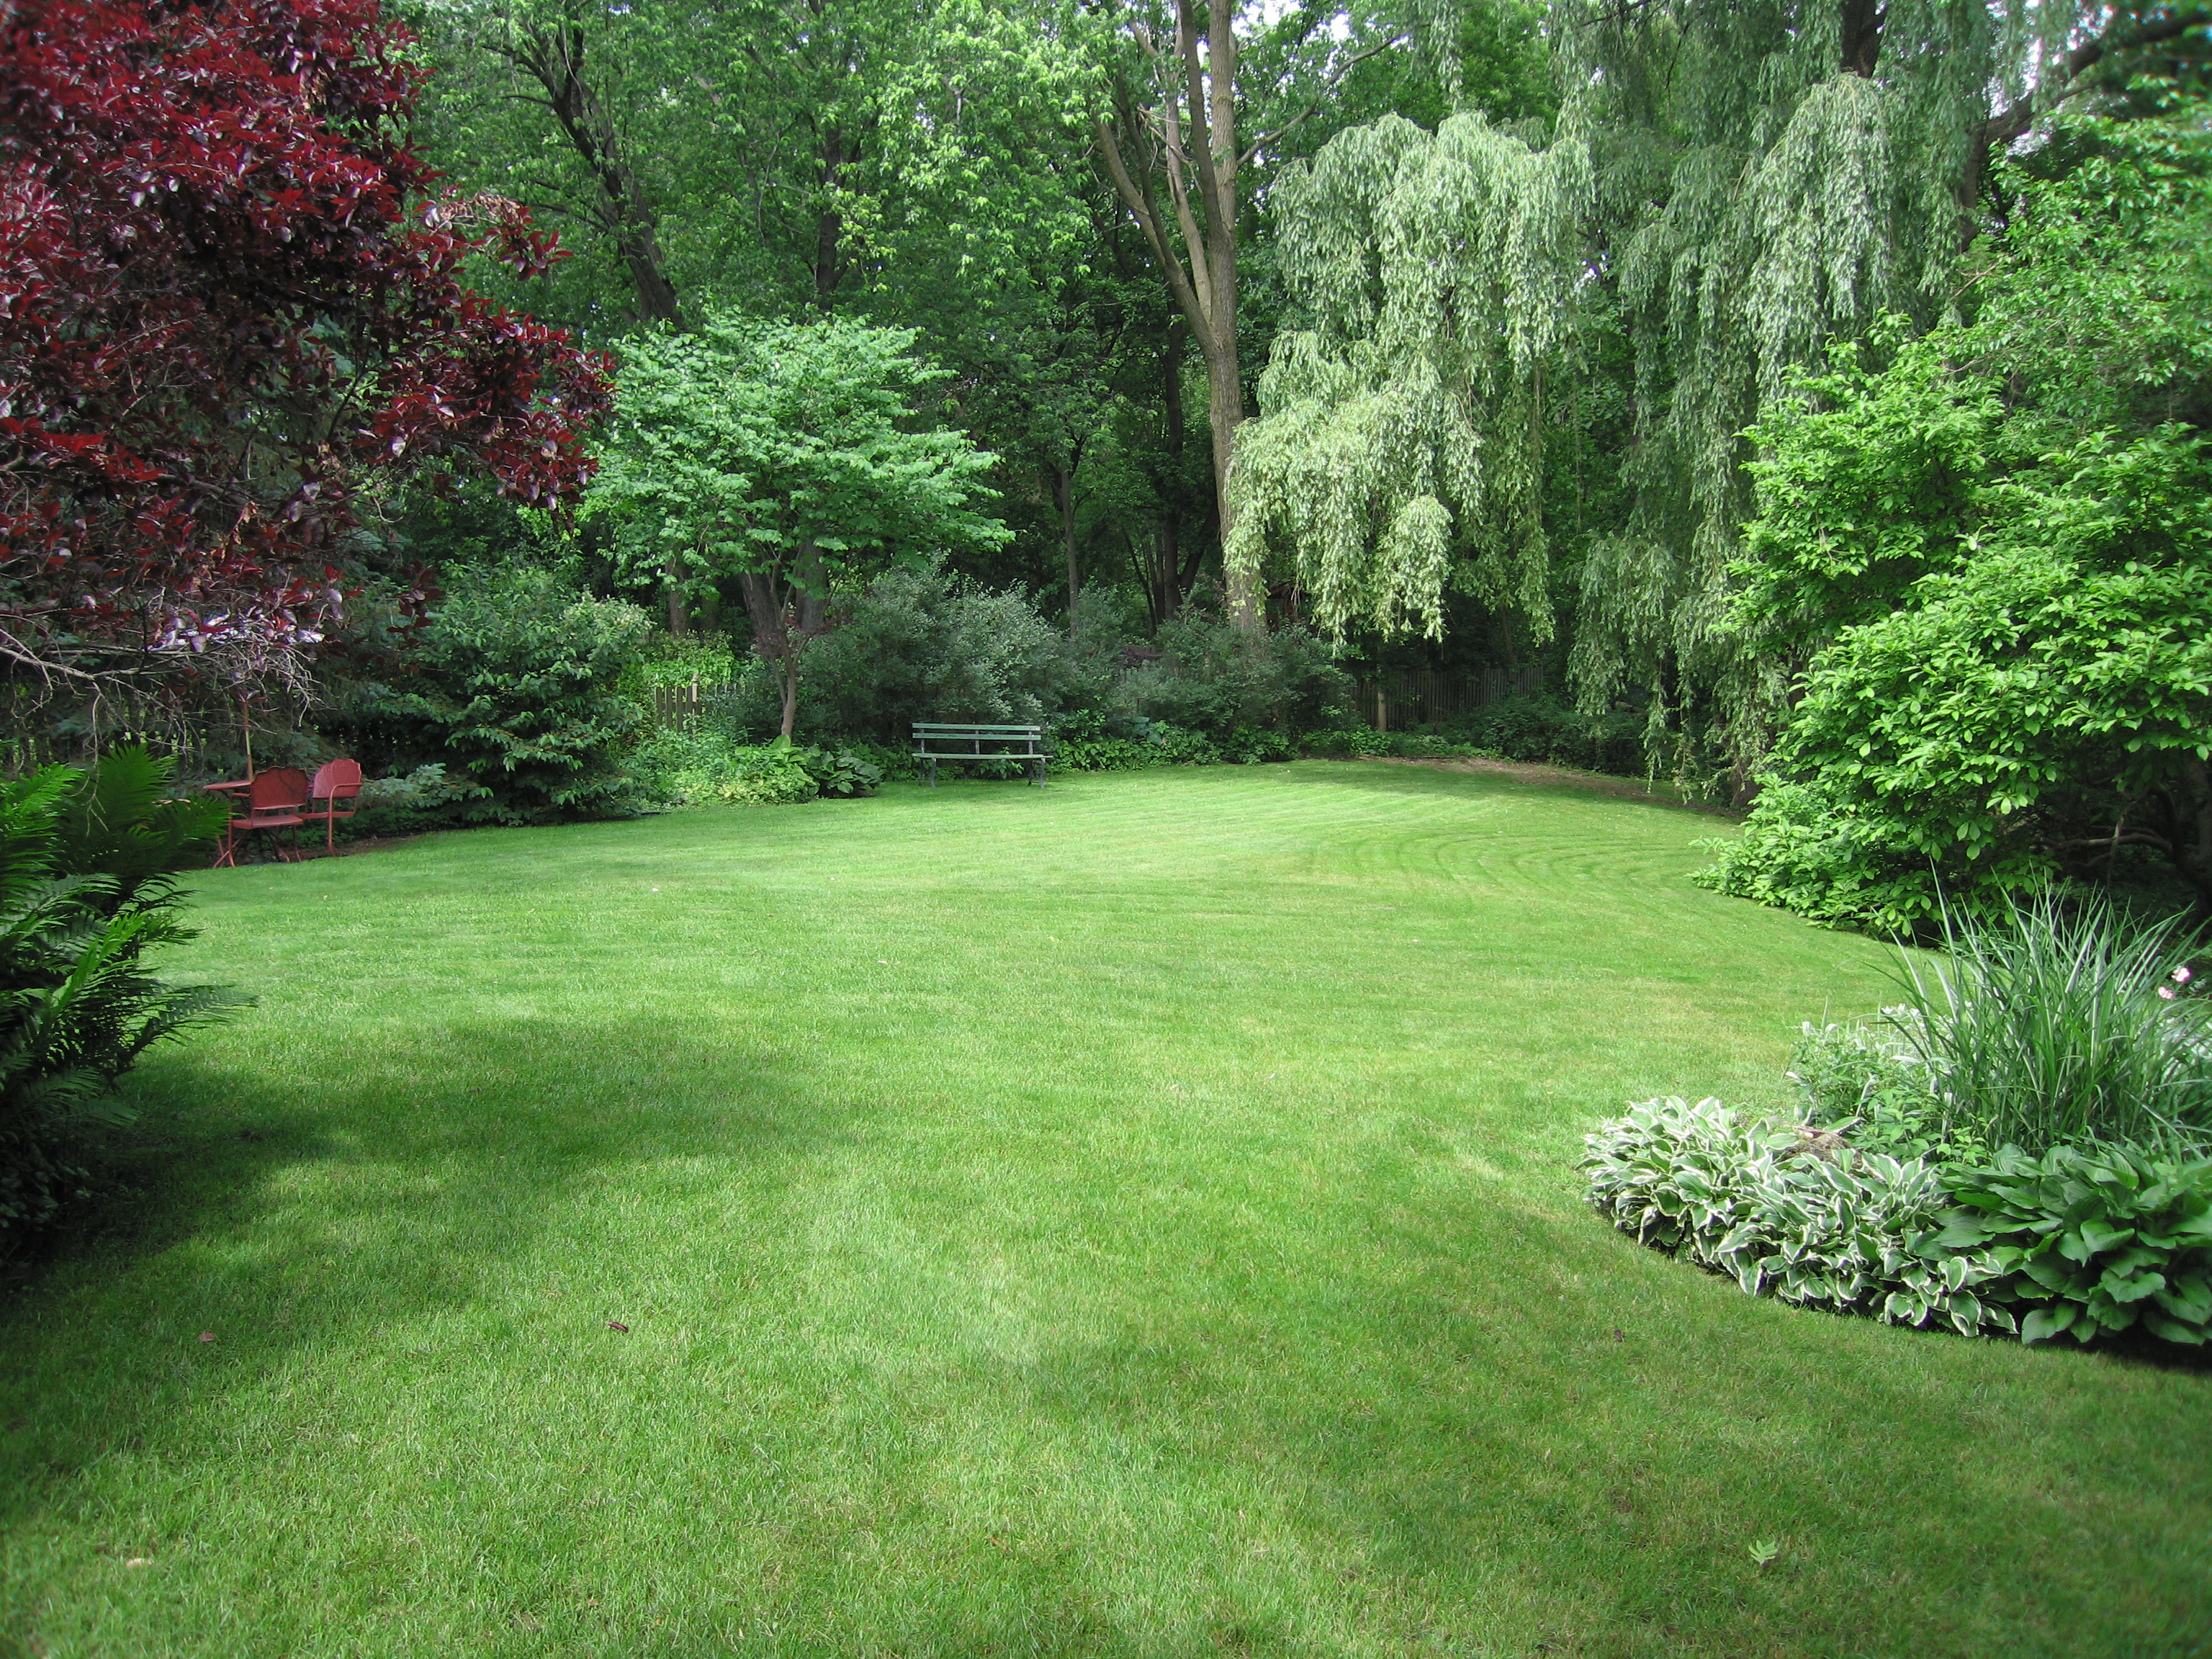 Yard Landscaping Pictures & Ideas: Backyard at Whispering Oaks